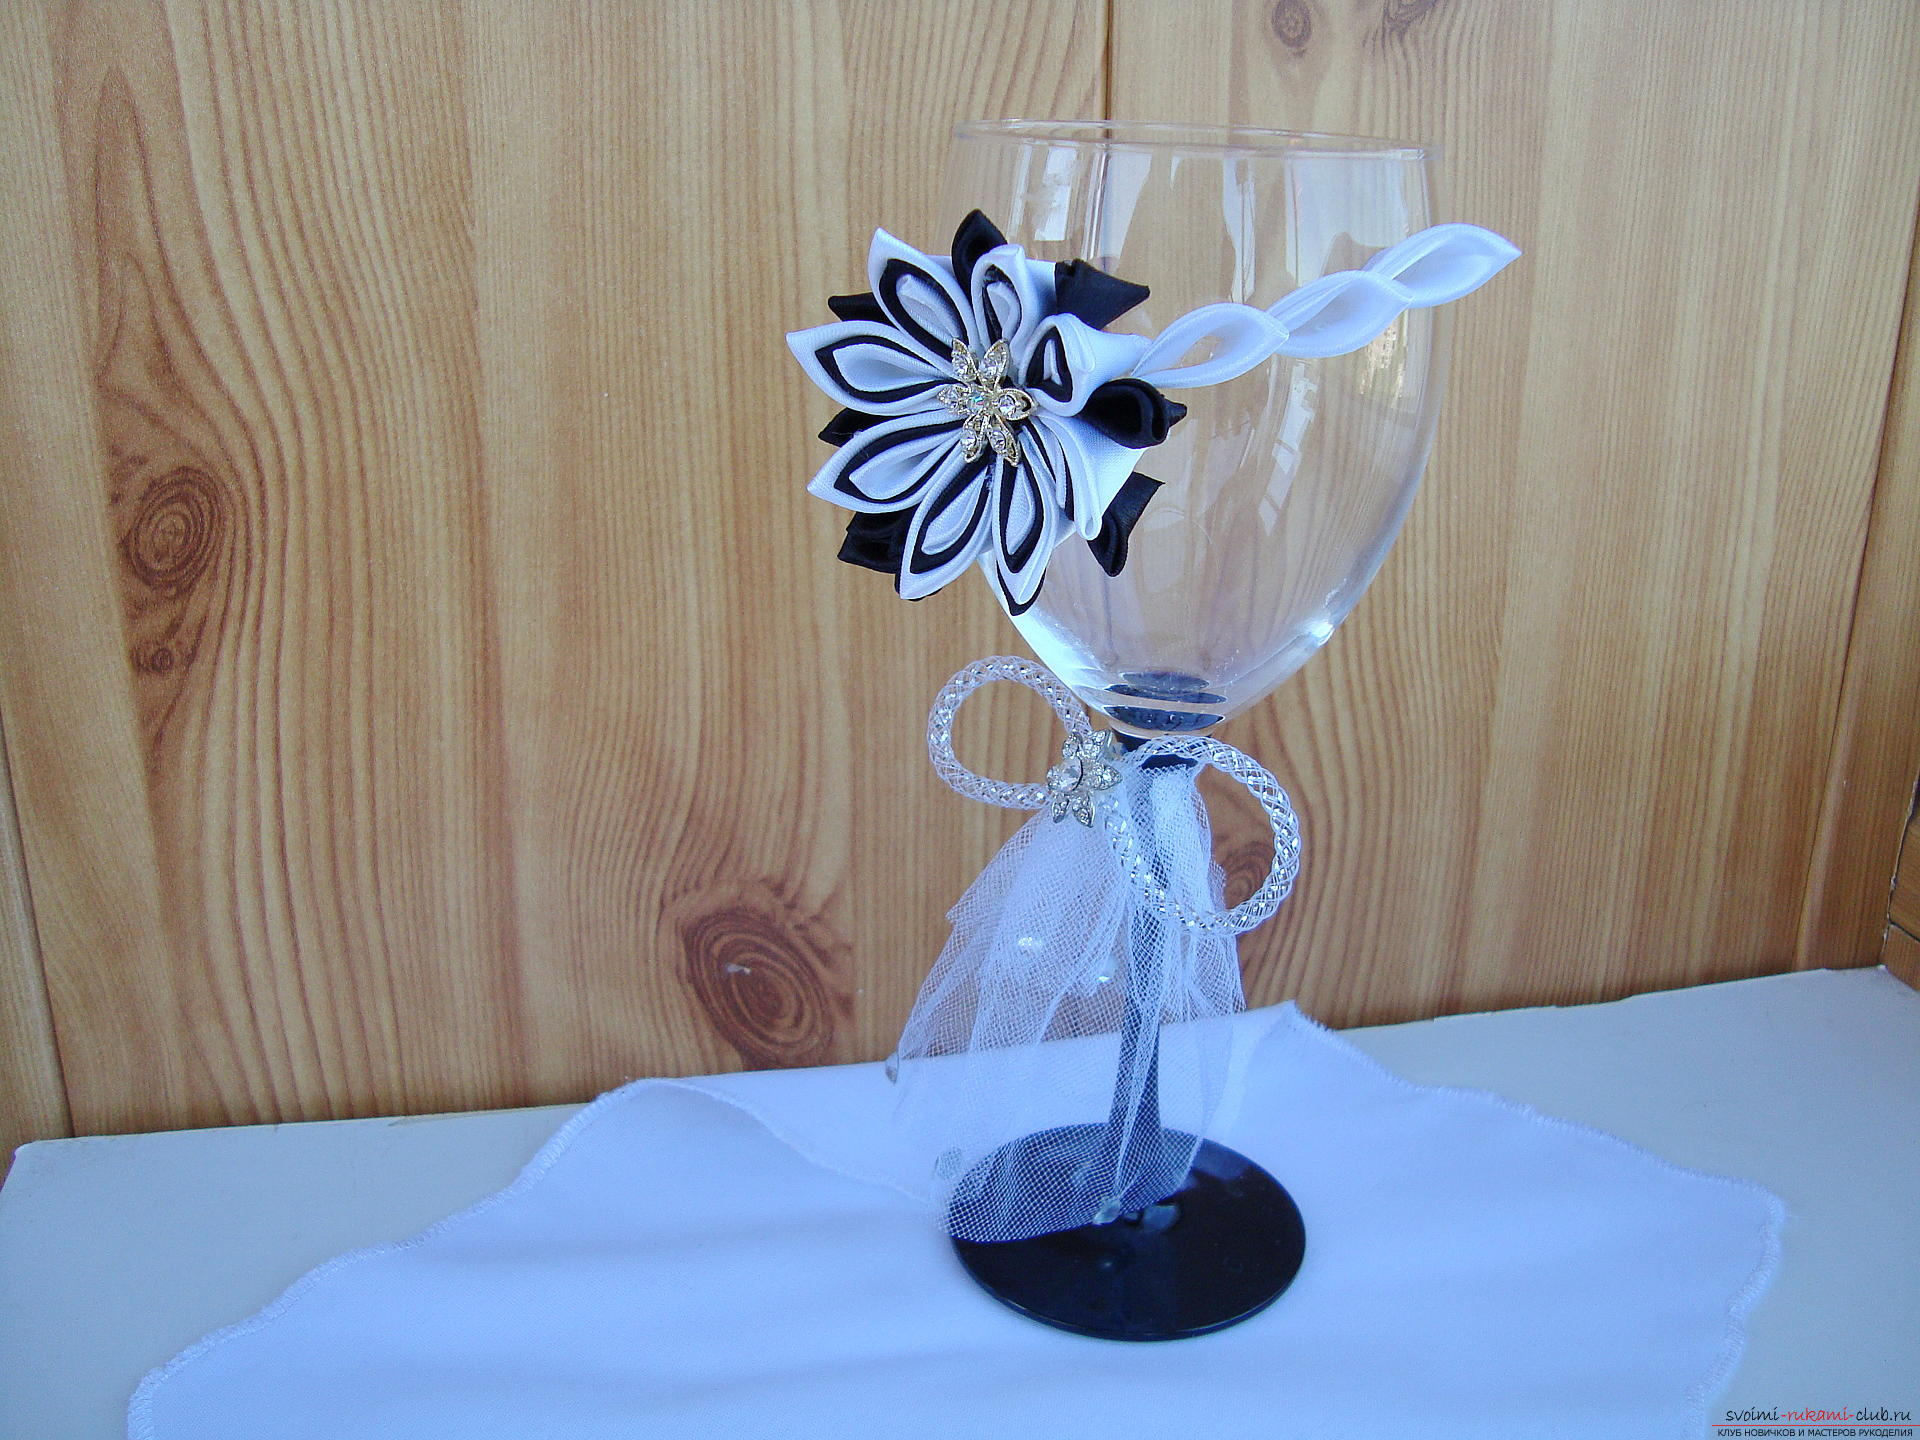 Step-by-step instruction on decorating a wedding glass with a description and a photo. Photo number 35